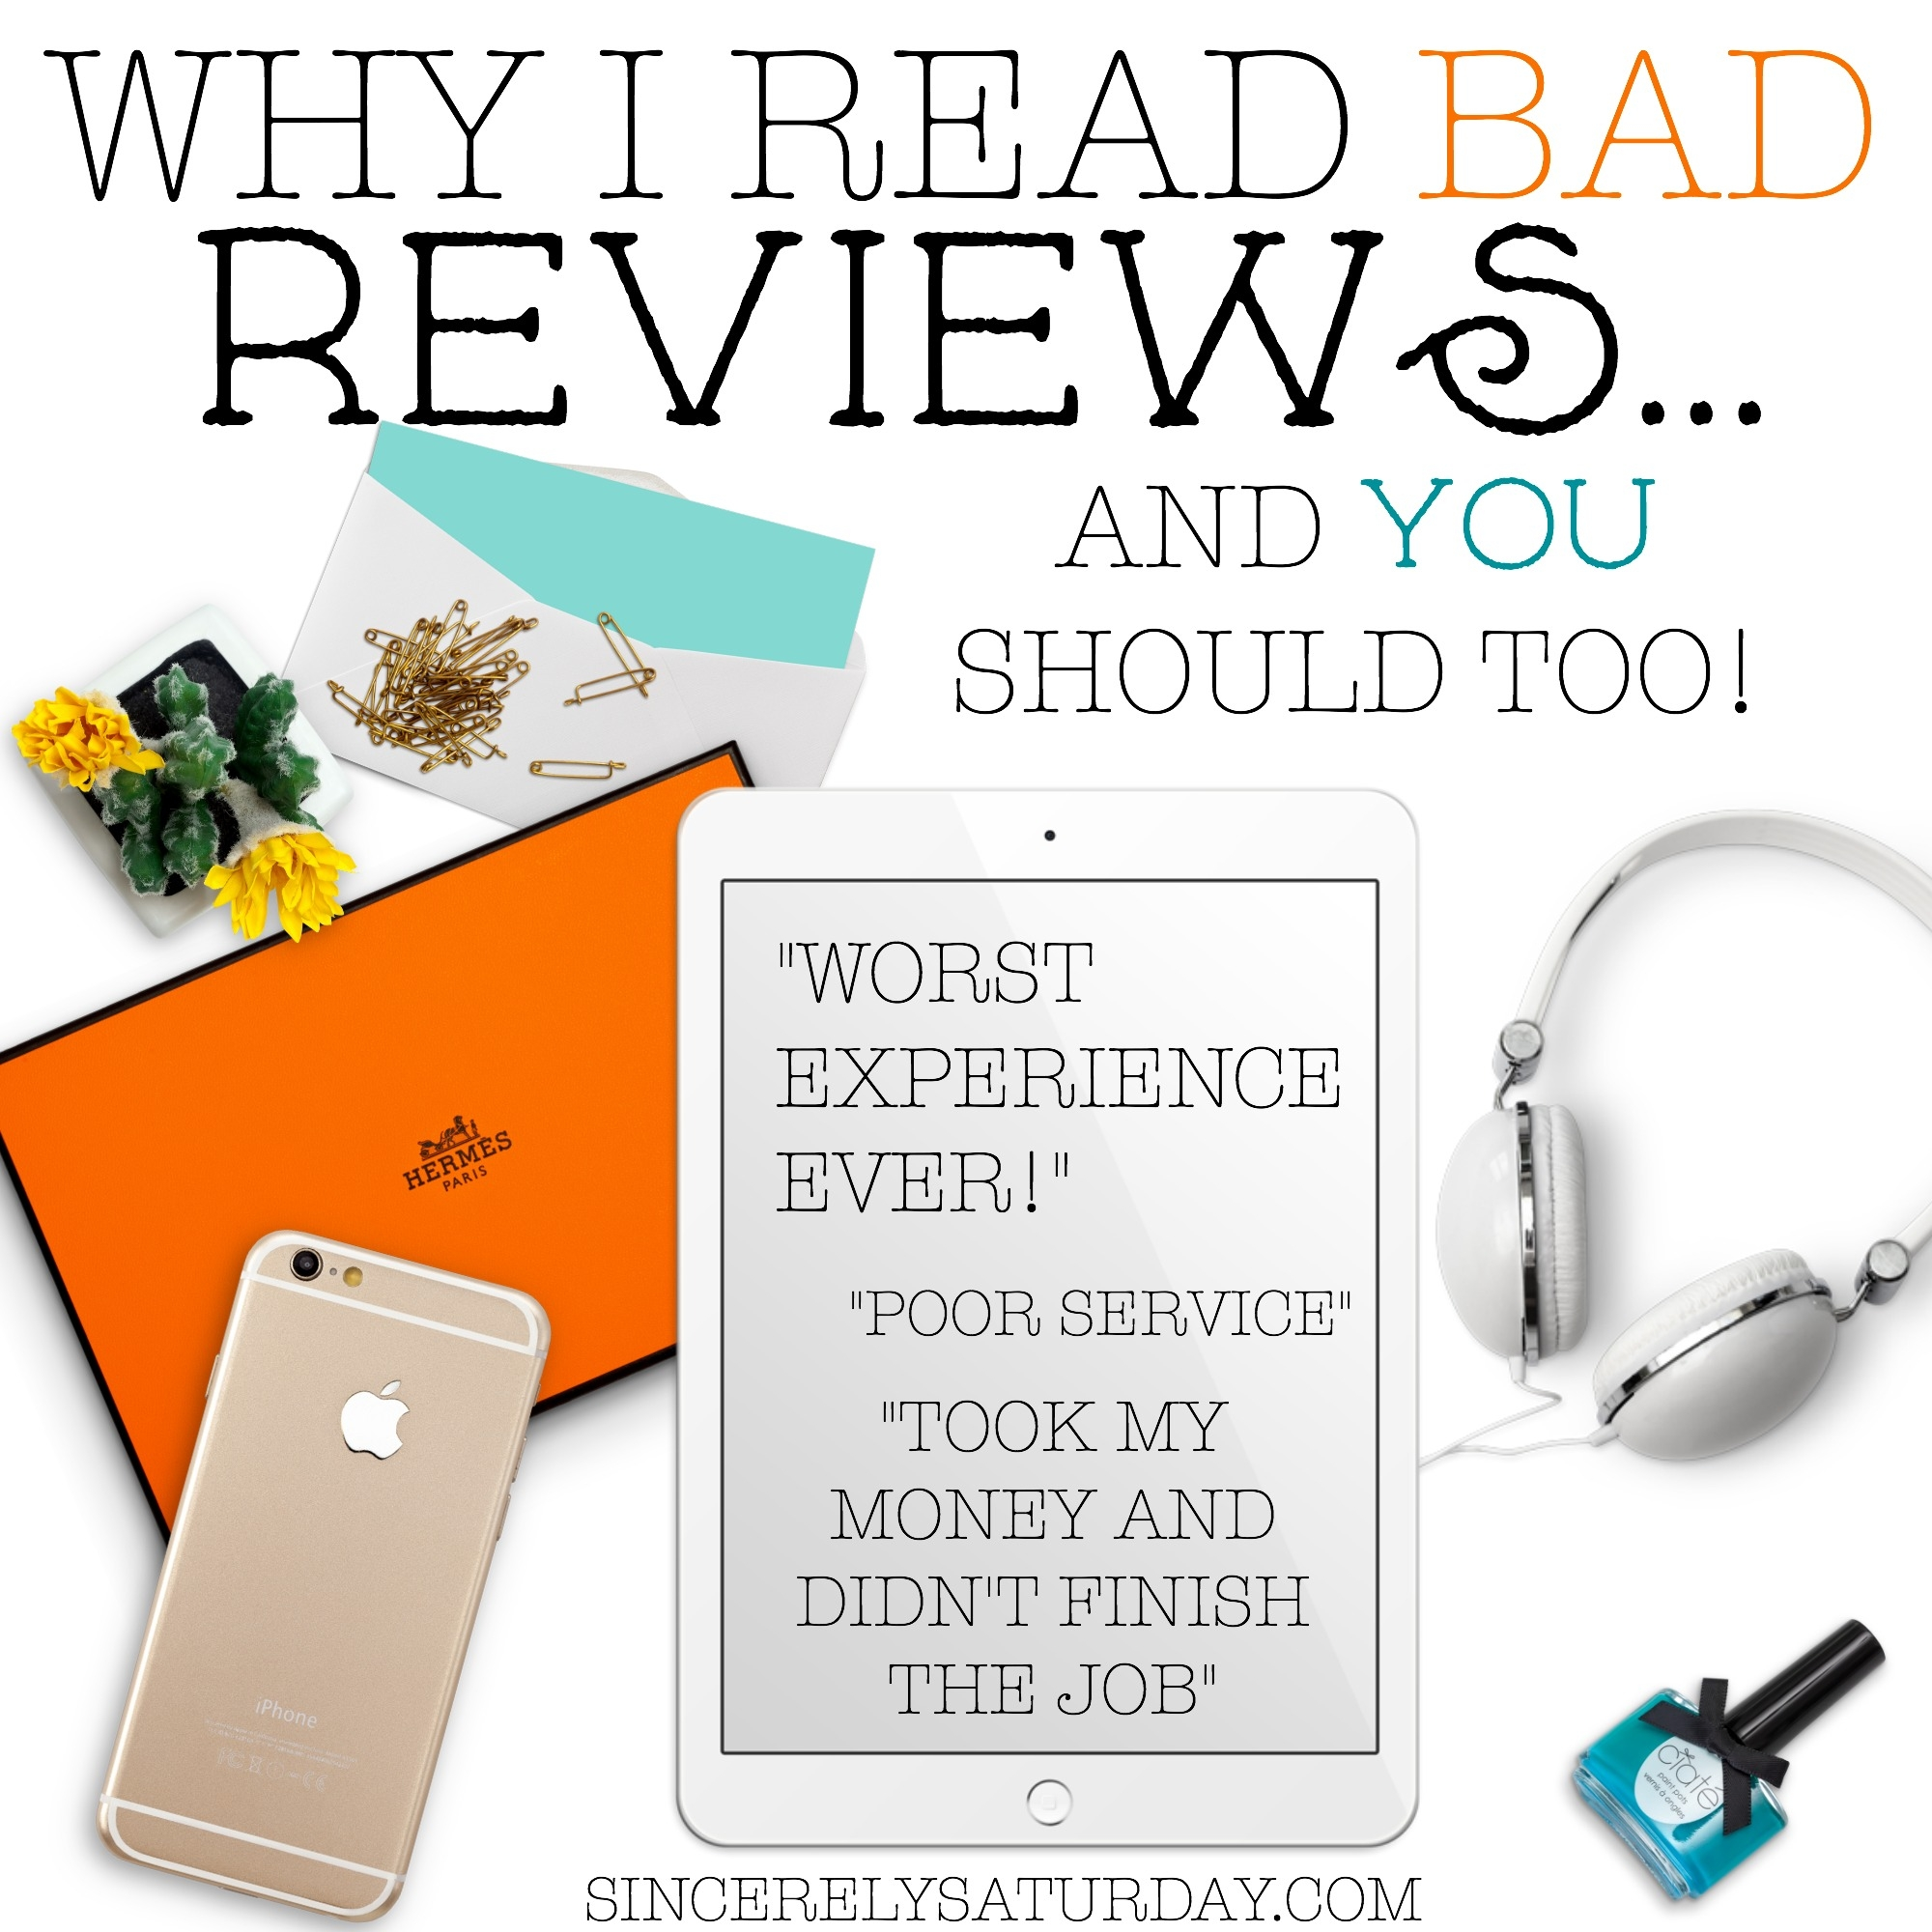 WHY I READ BAD REVIEWS AND YOU SHOULD TOO! NEGATIVE REVIEWS